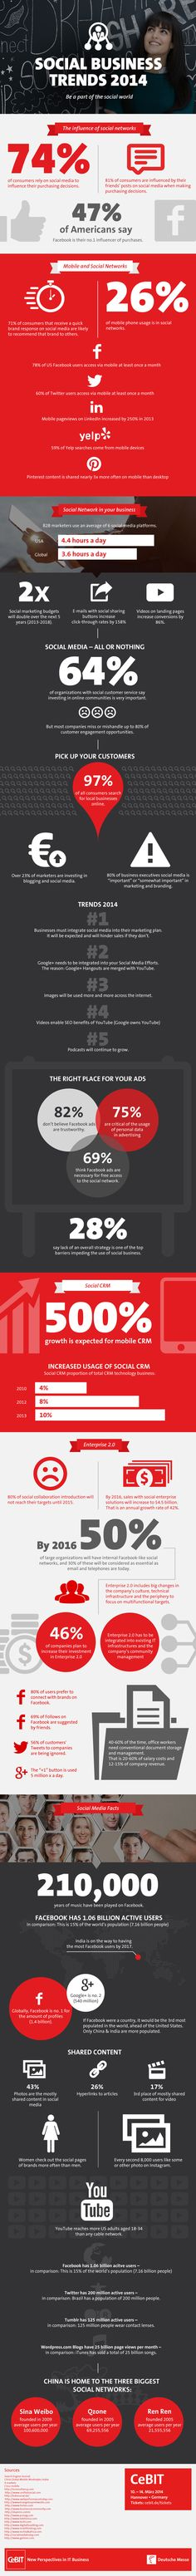 Still not convinced that using social media effectively can generate value and even profitability? Check out this Social Business Trends 2014 Infographic from CeBIT.